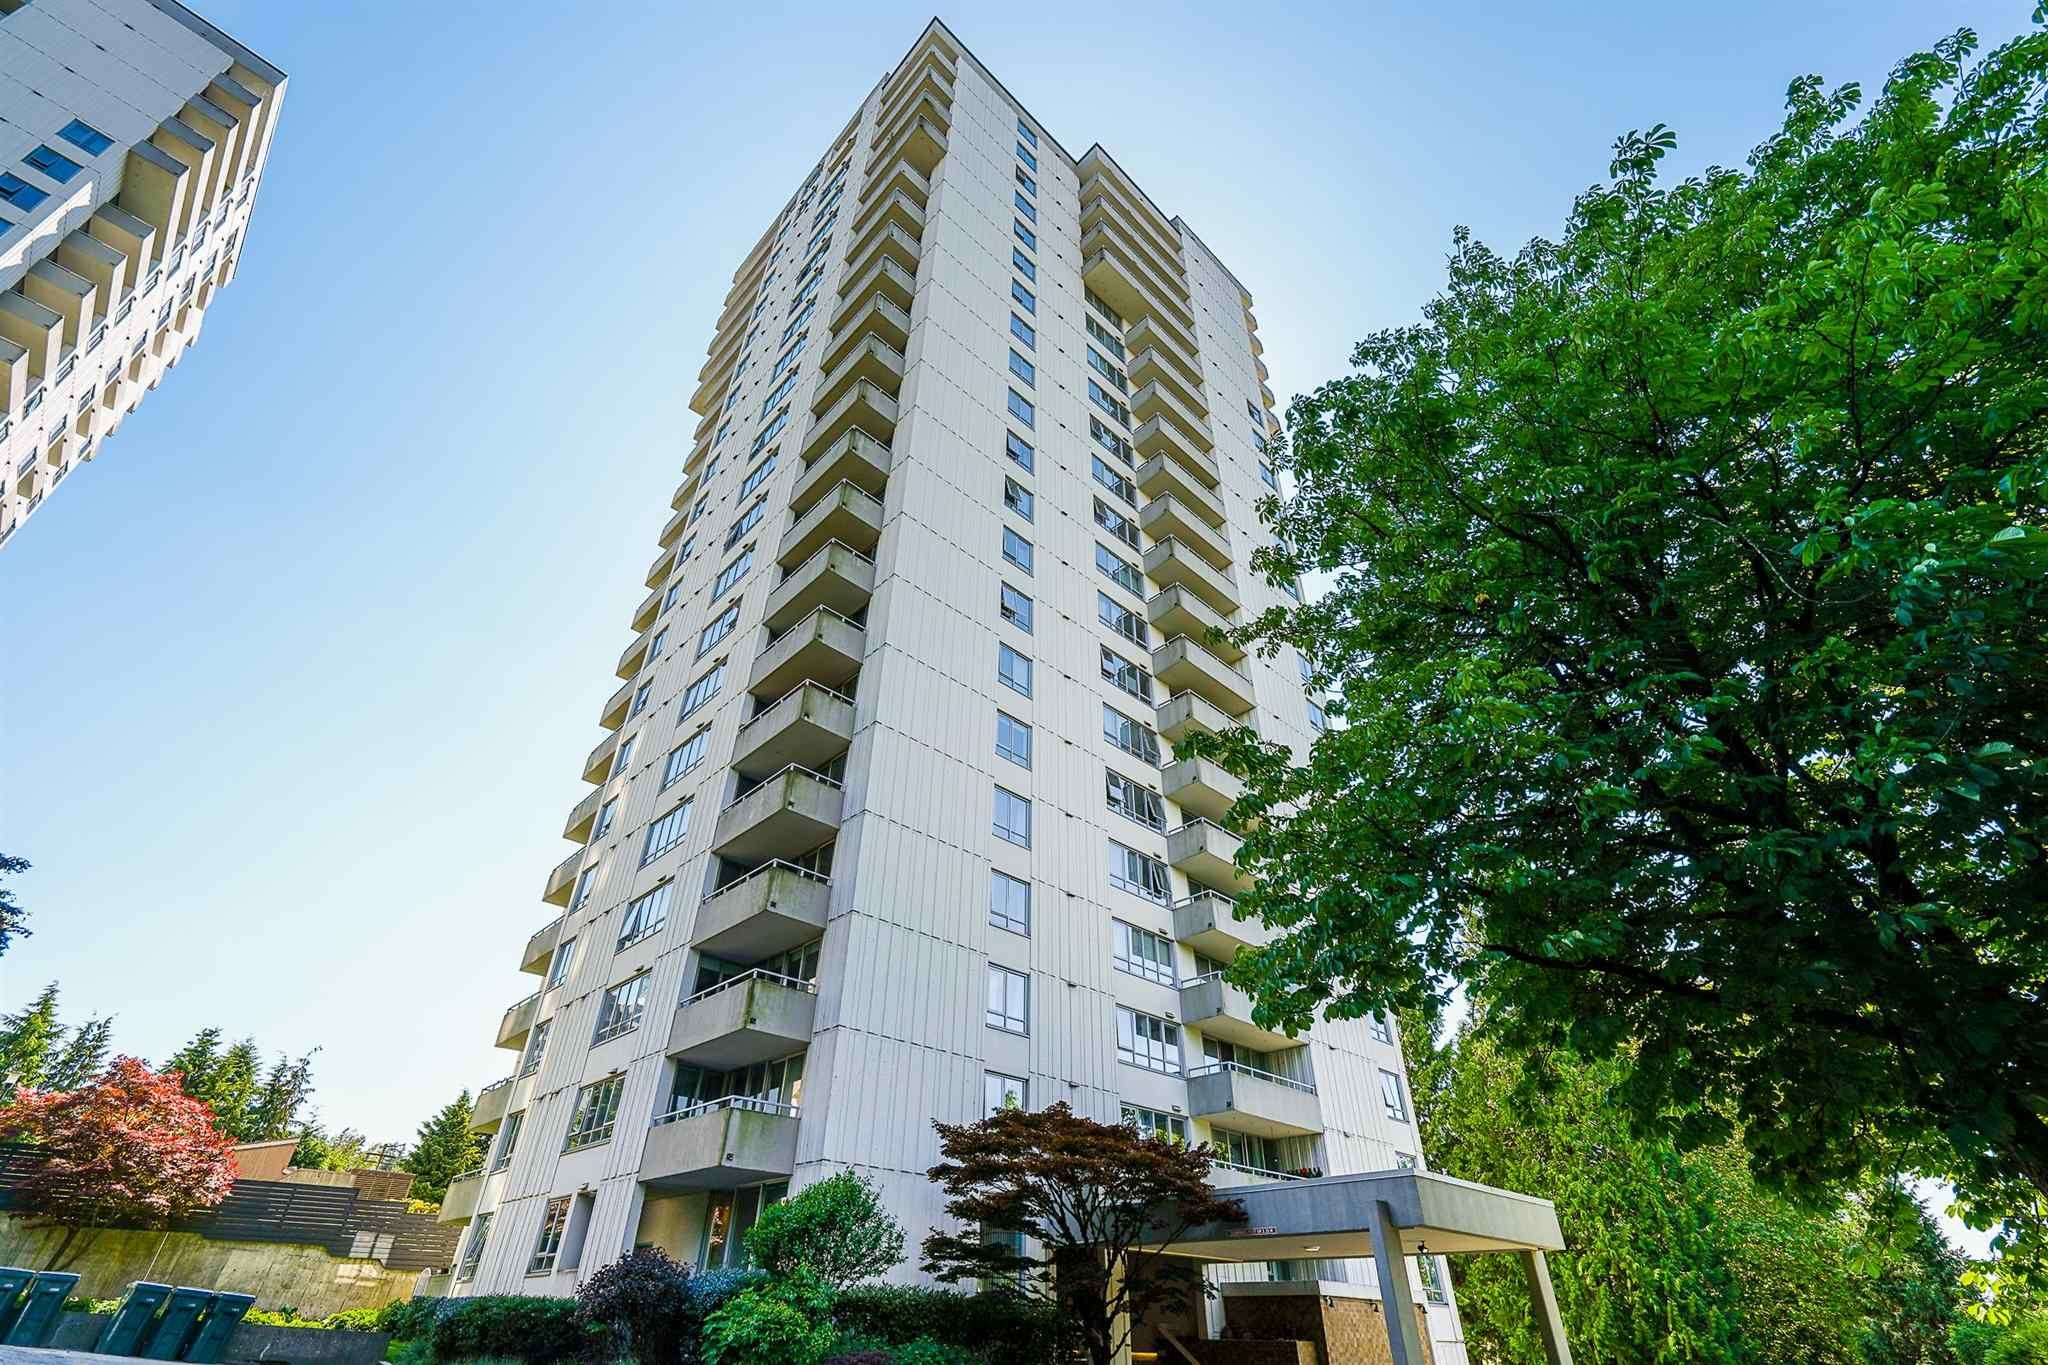 Main Photo: 1104 4160 SARDIS Street in Burnaby: Central Park BS Condo for sale (Burnaby South)  : MLS®# R2594358